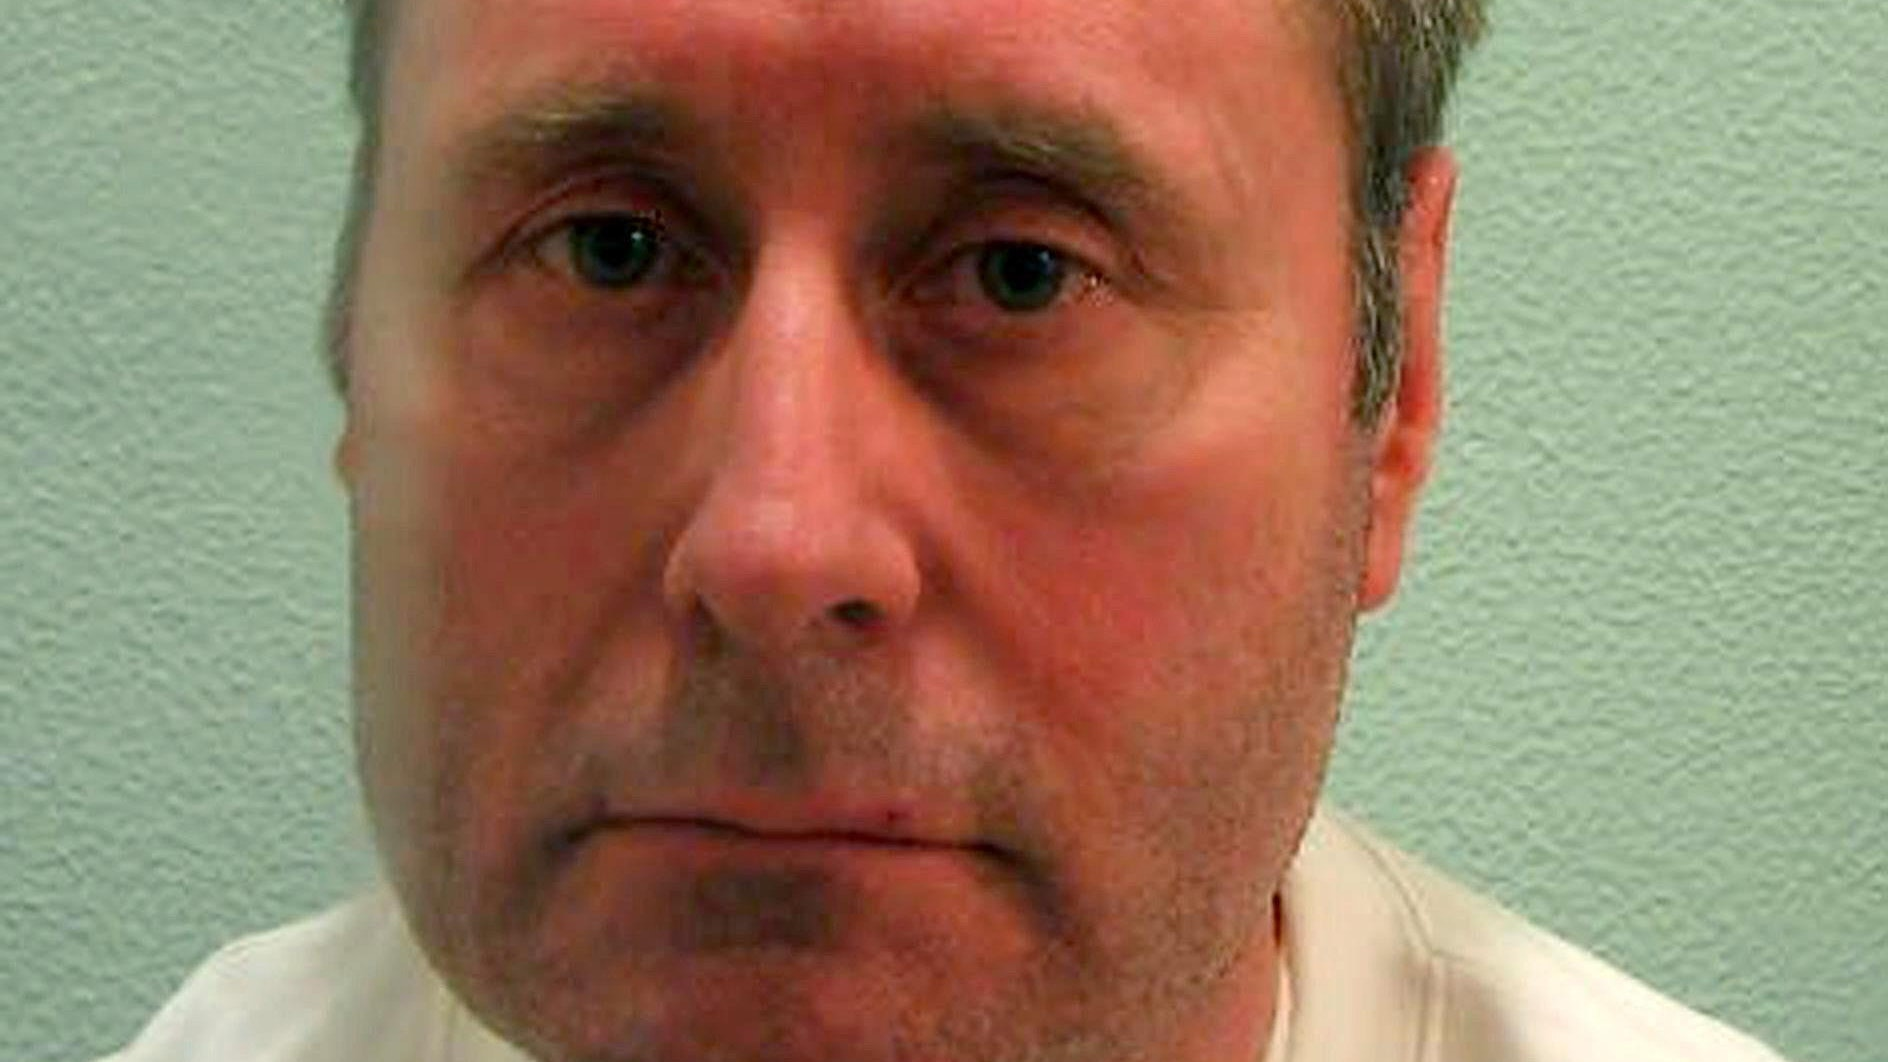 Police investigating new allegation of sexual assault against John Worboys